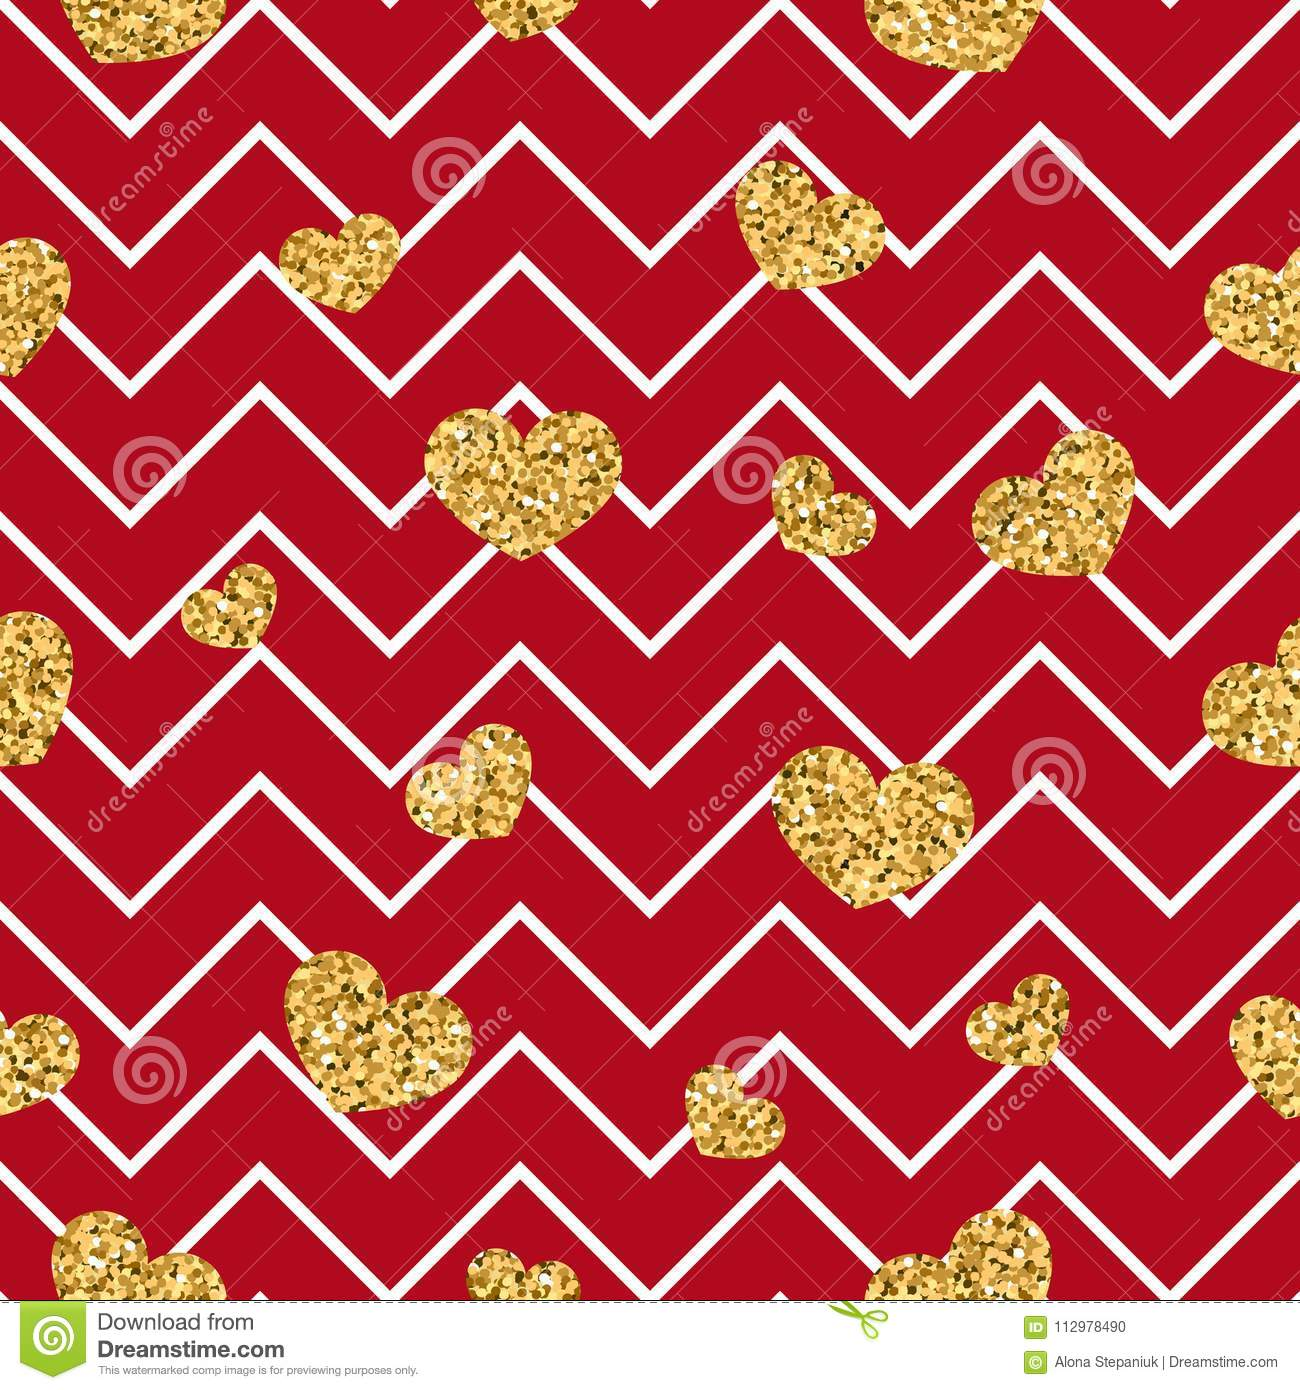 Gold heart seamless pattern. Red-white geometric zig zag, golden confetti-hearts. Symbol of love, Valentine day holiday